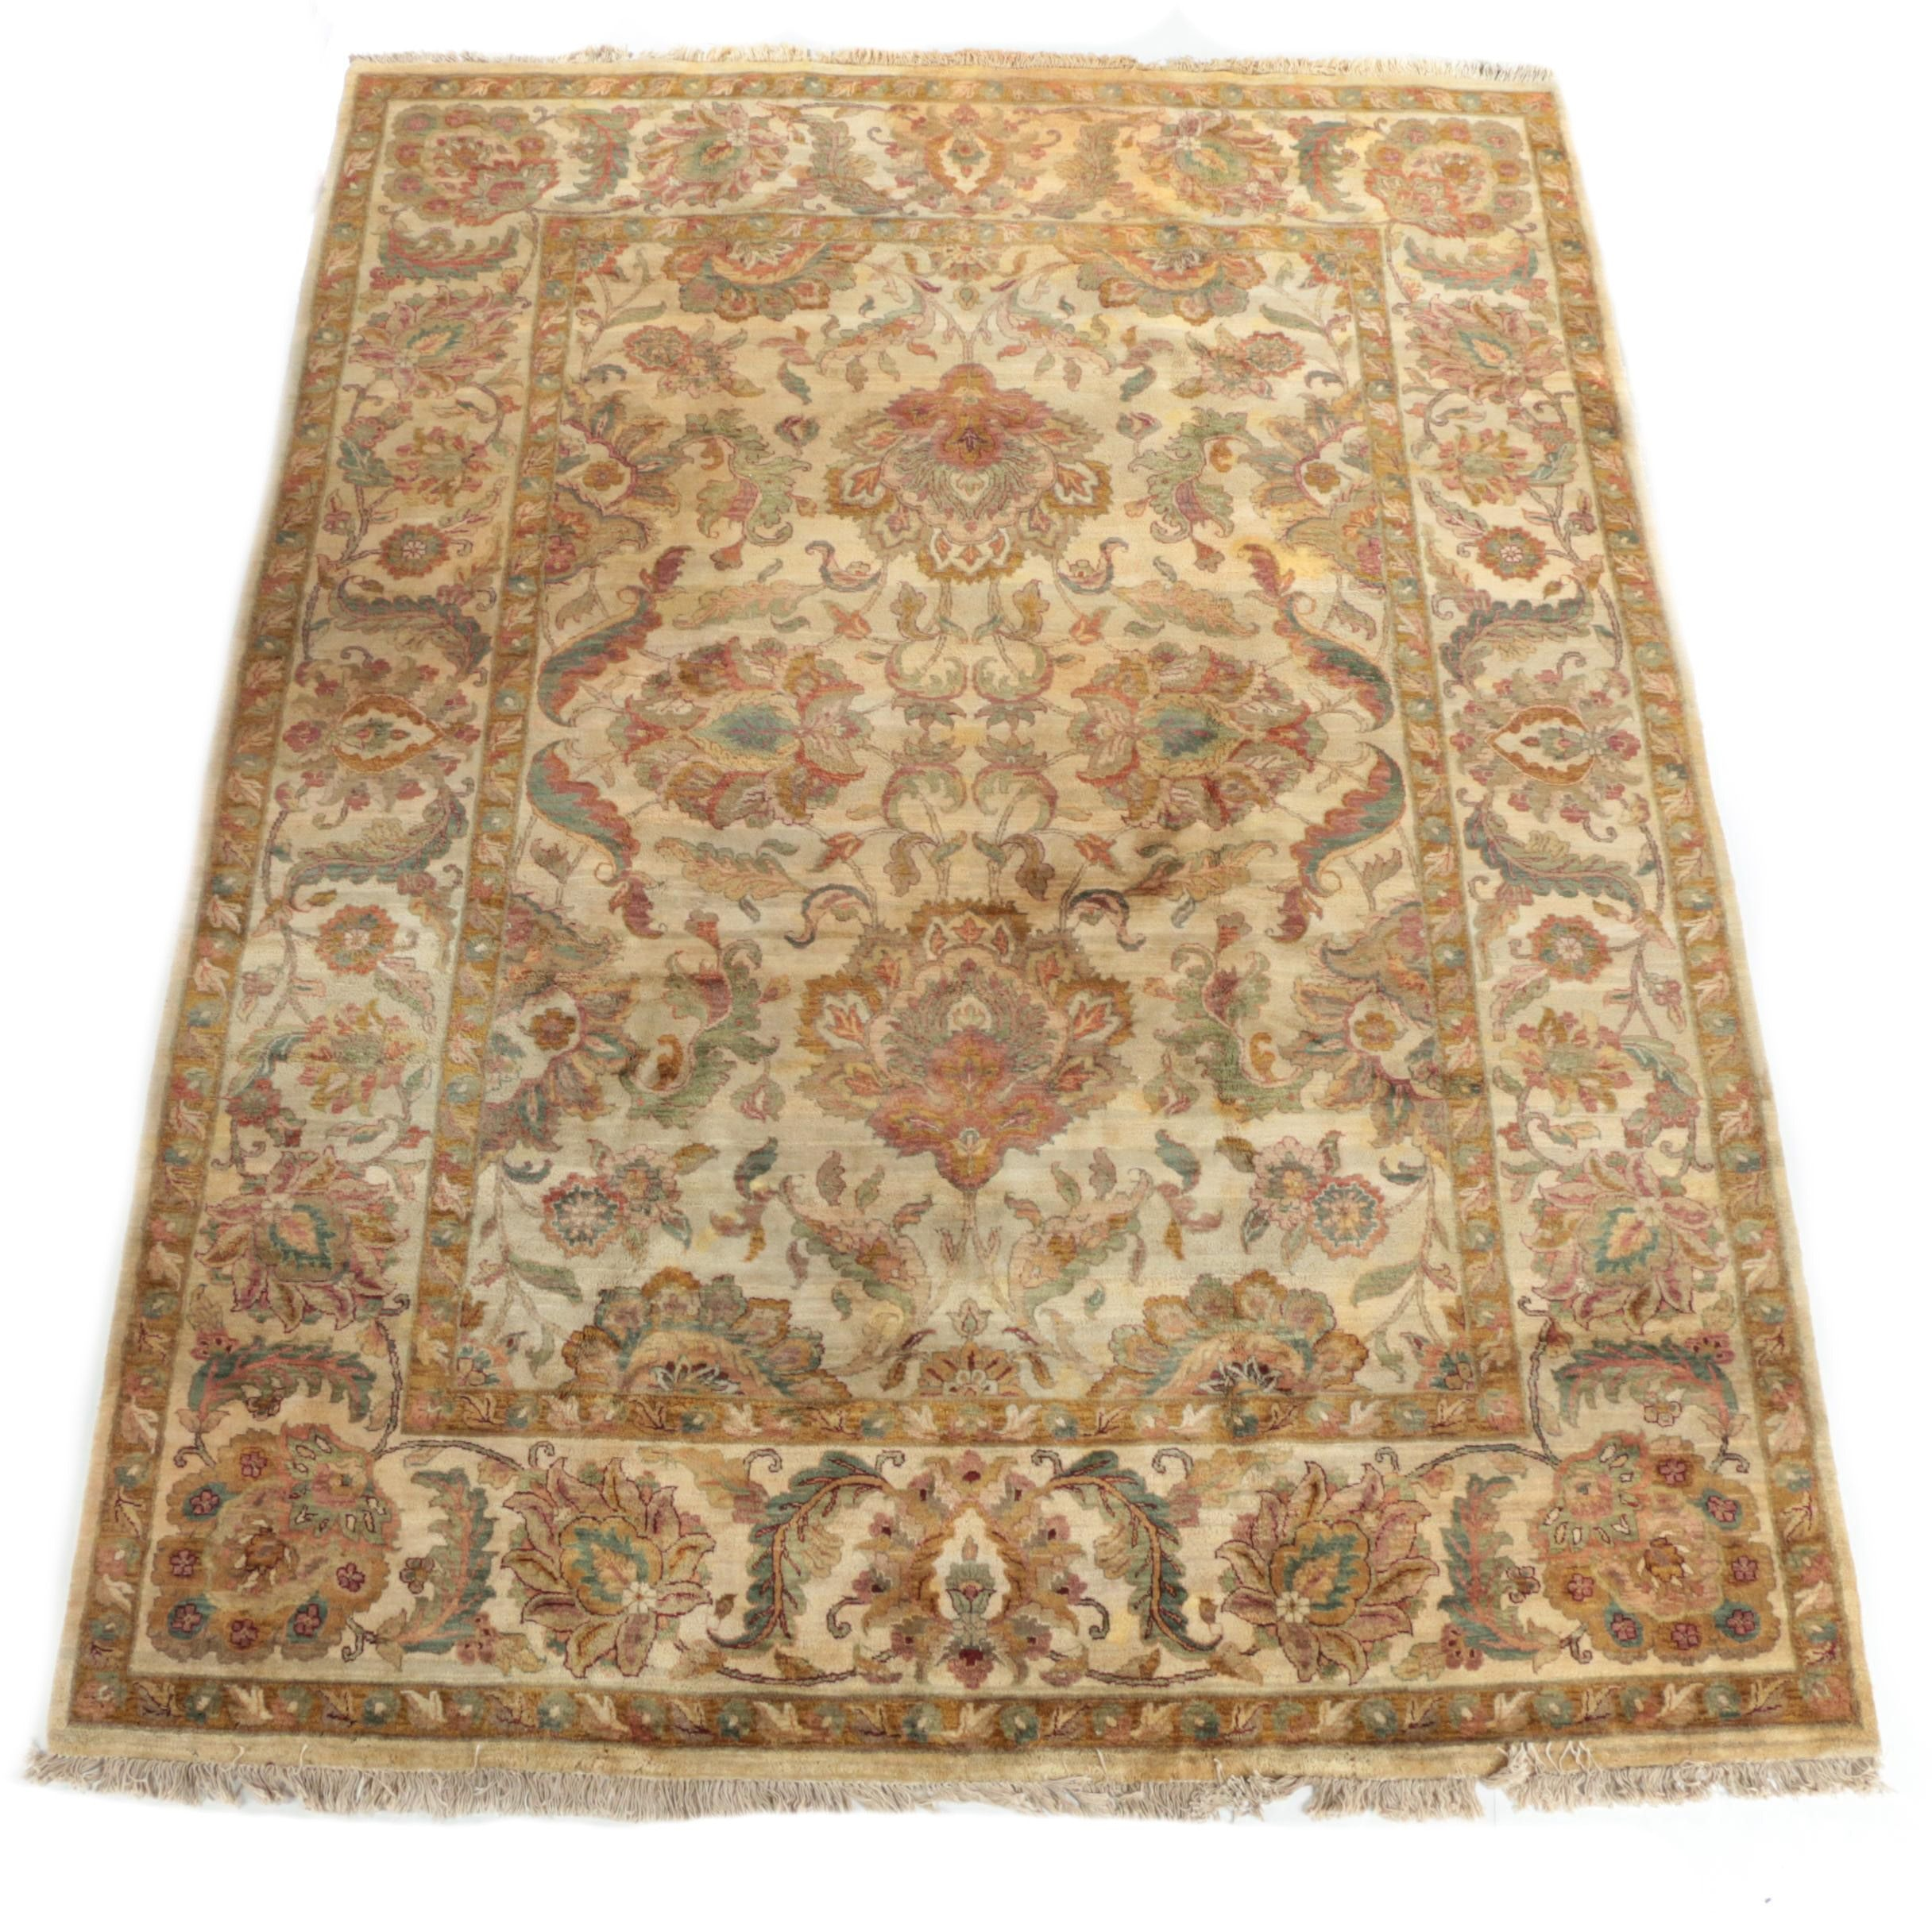 Hand-Knotted Indian Wool Room Size Rug